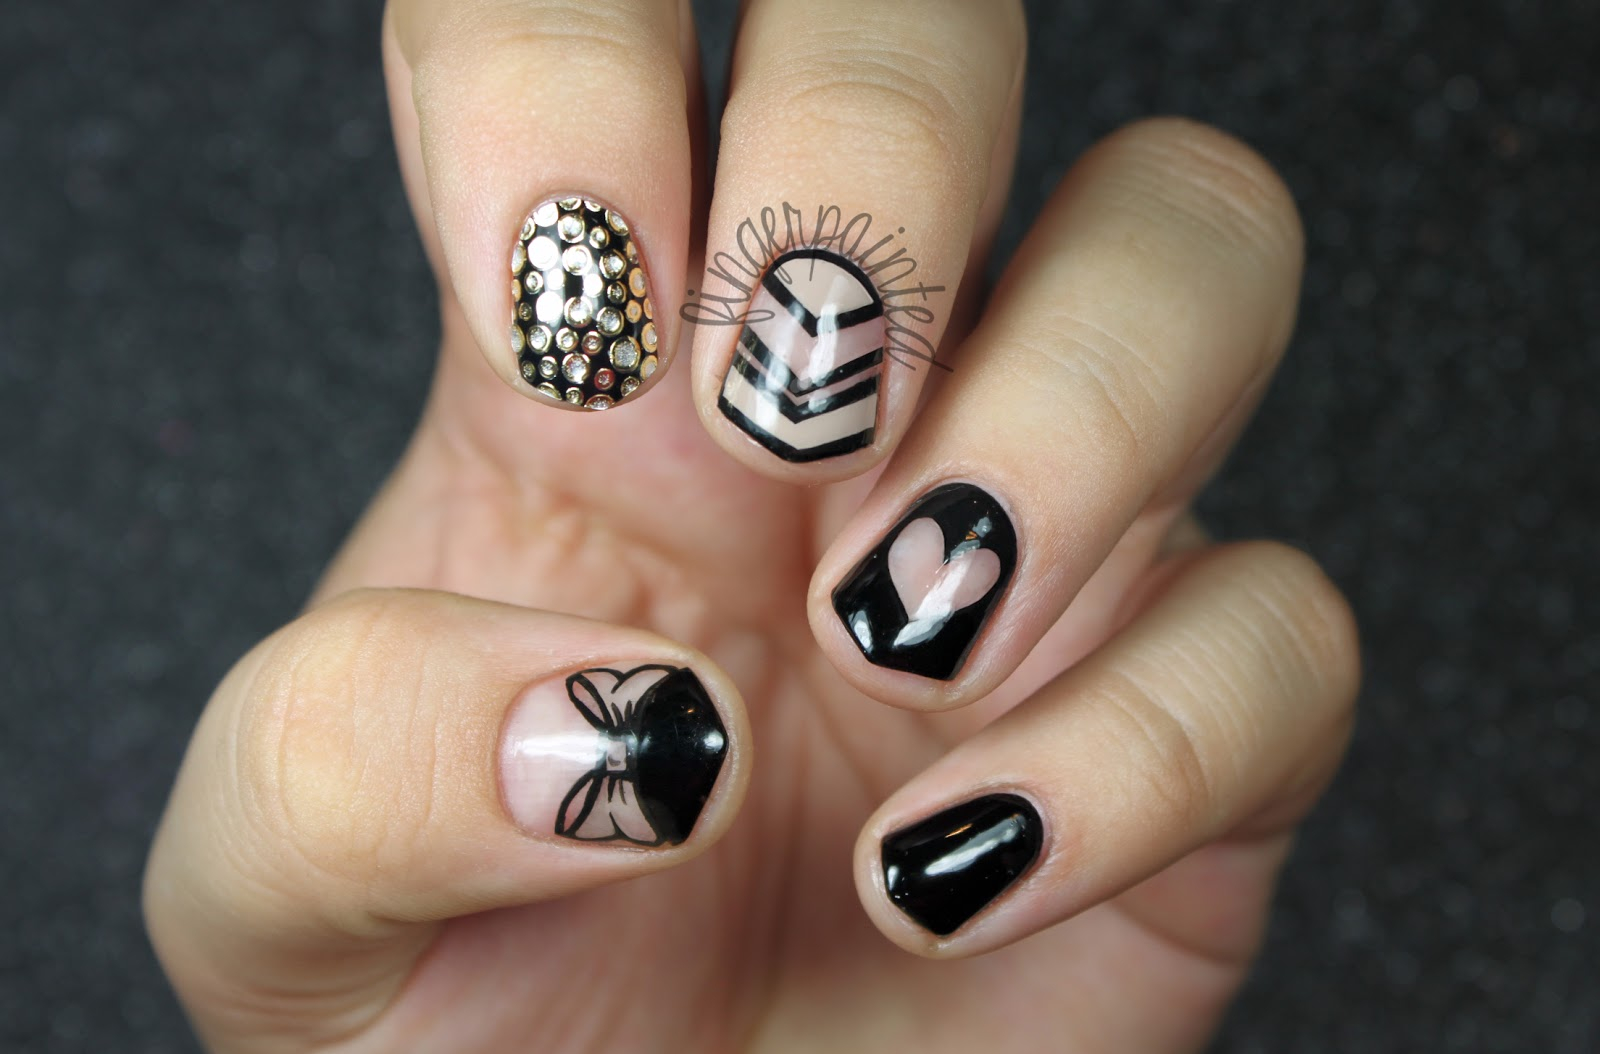 Black Nails with Design